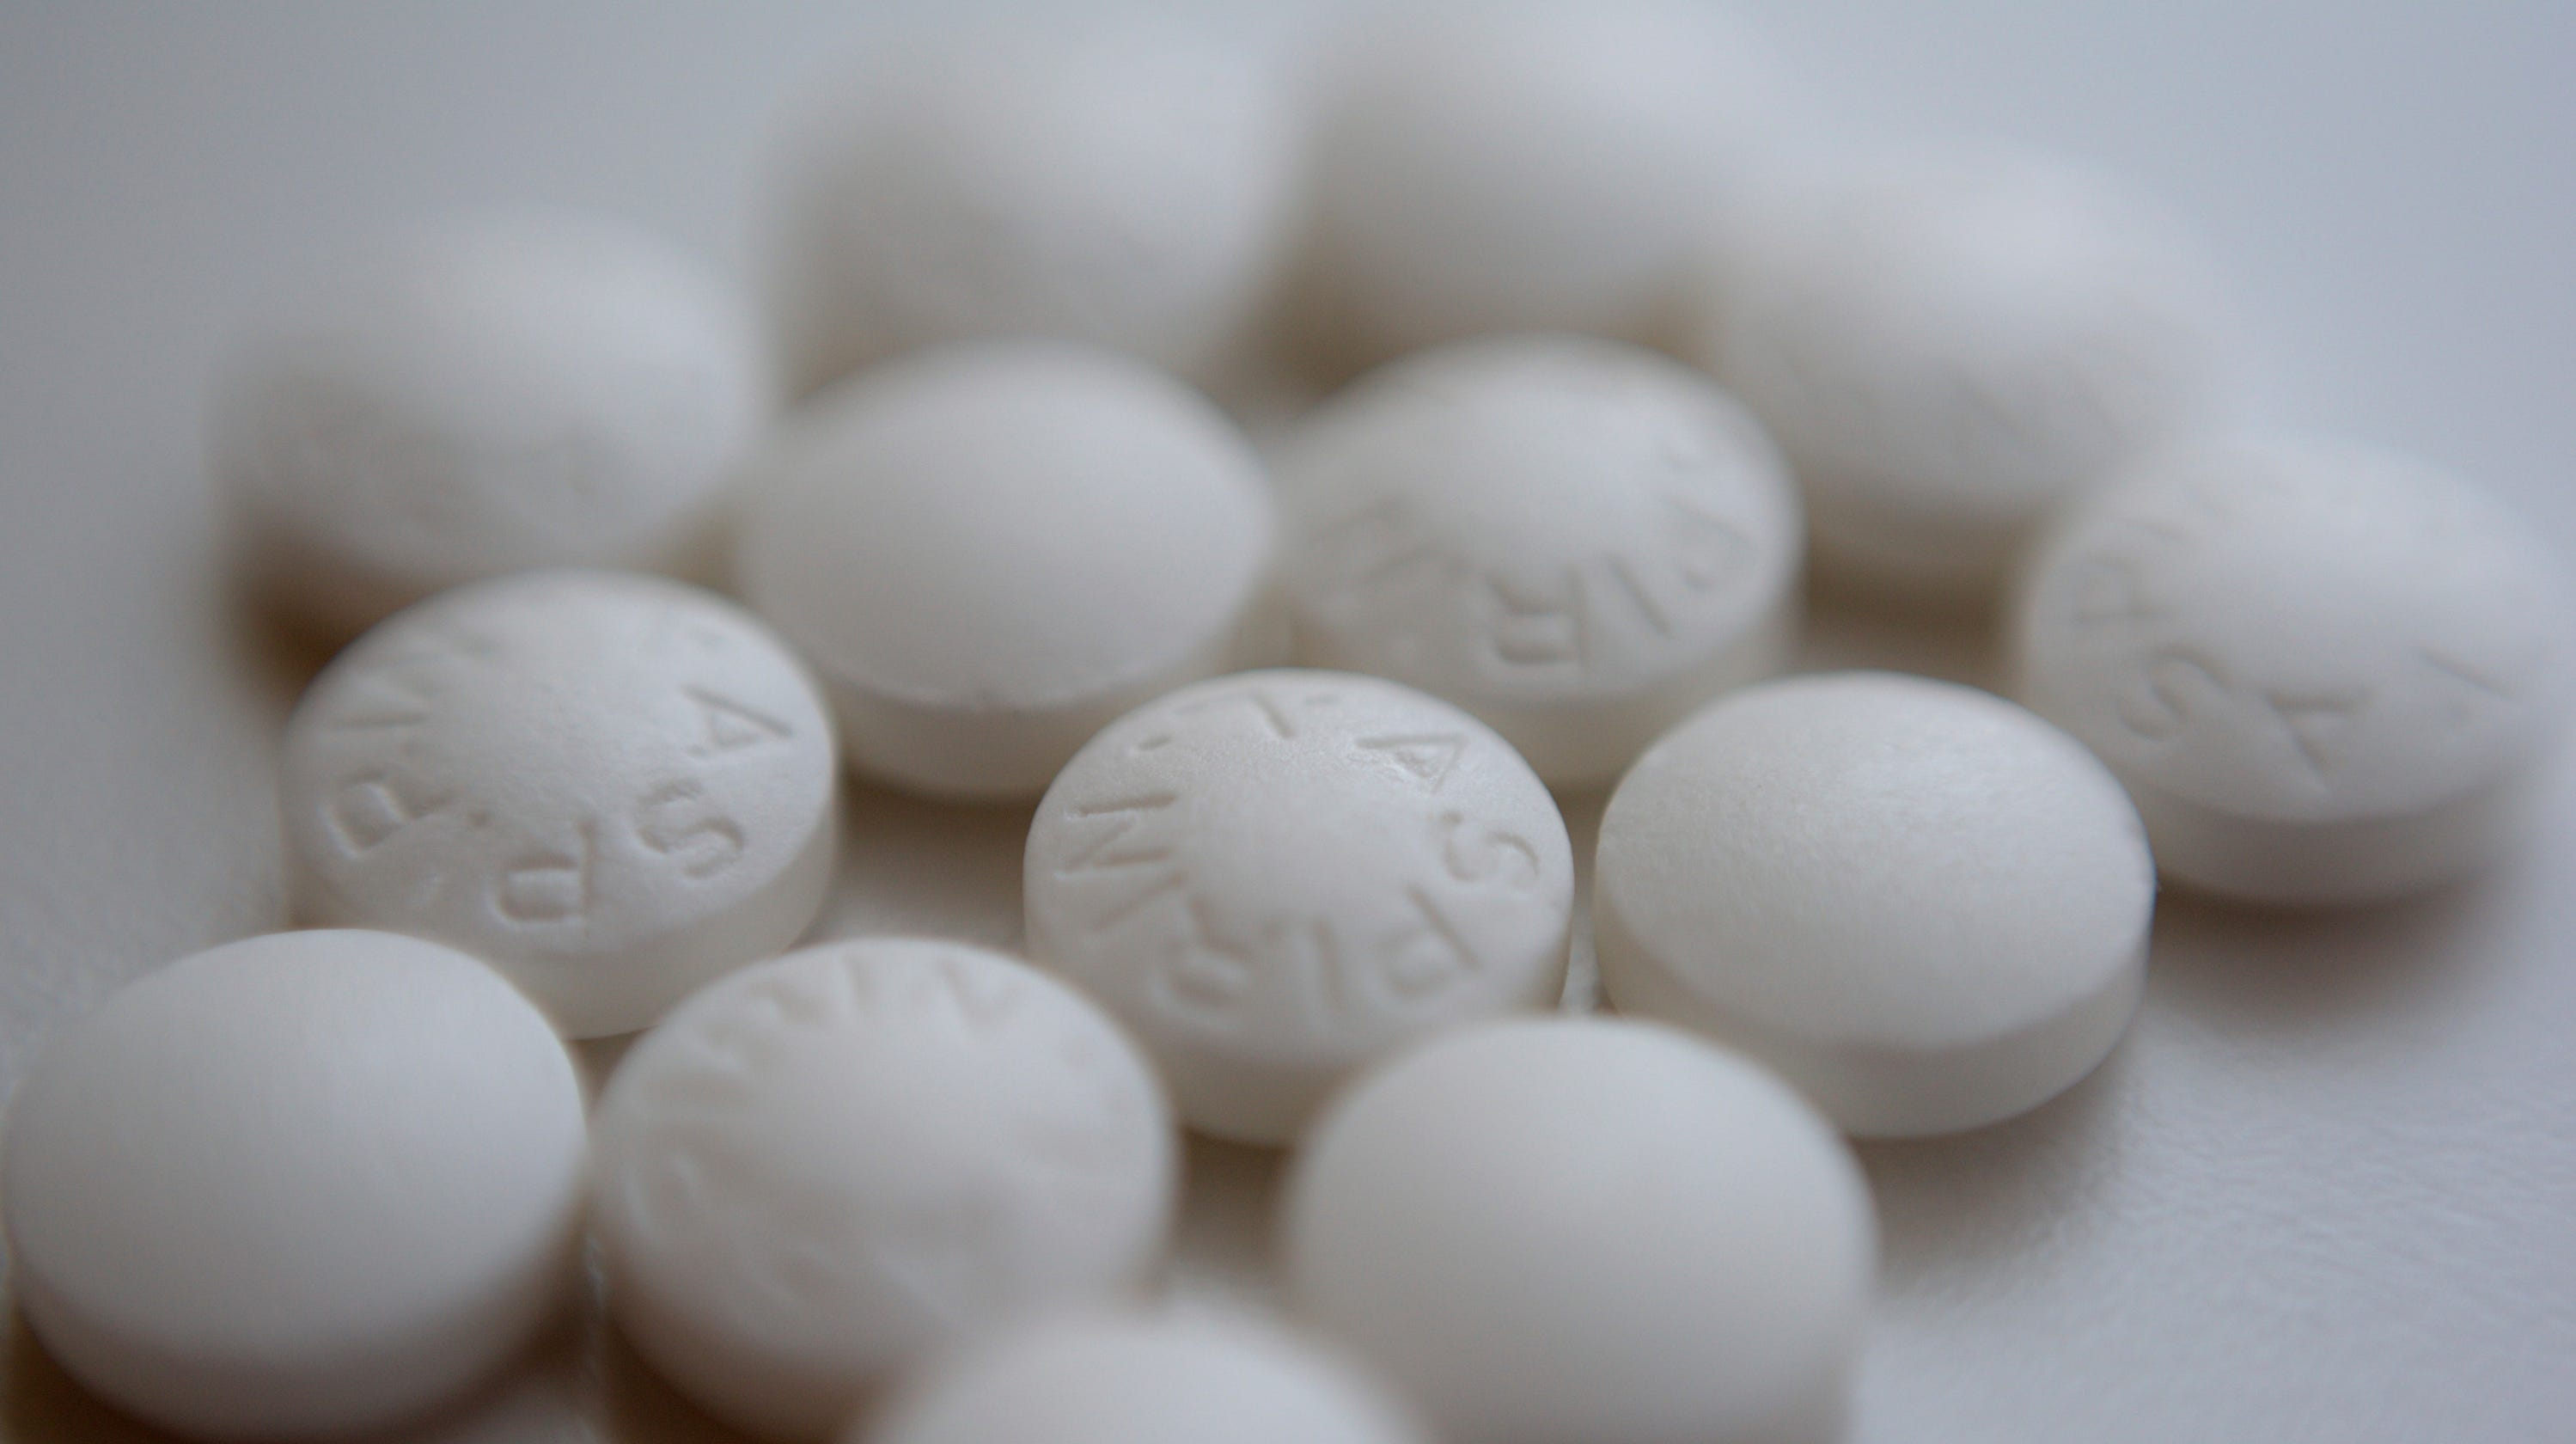 Millions should stop taking aspirin every day to prevent heart attacks, study says